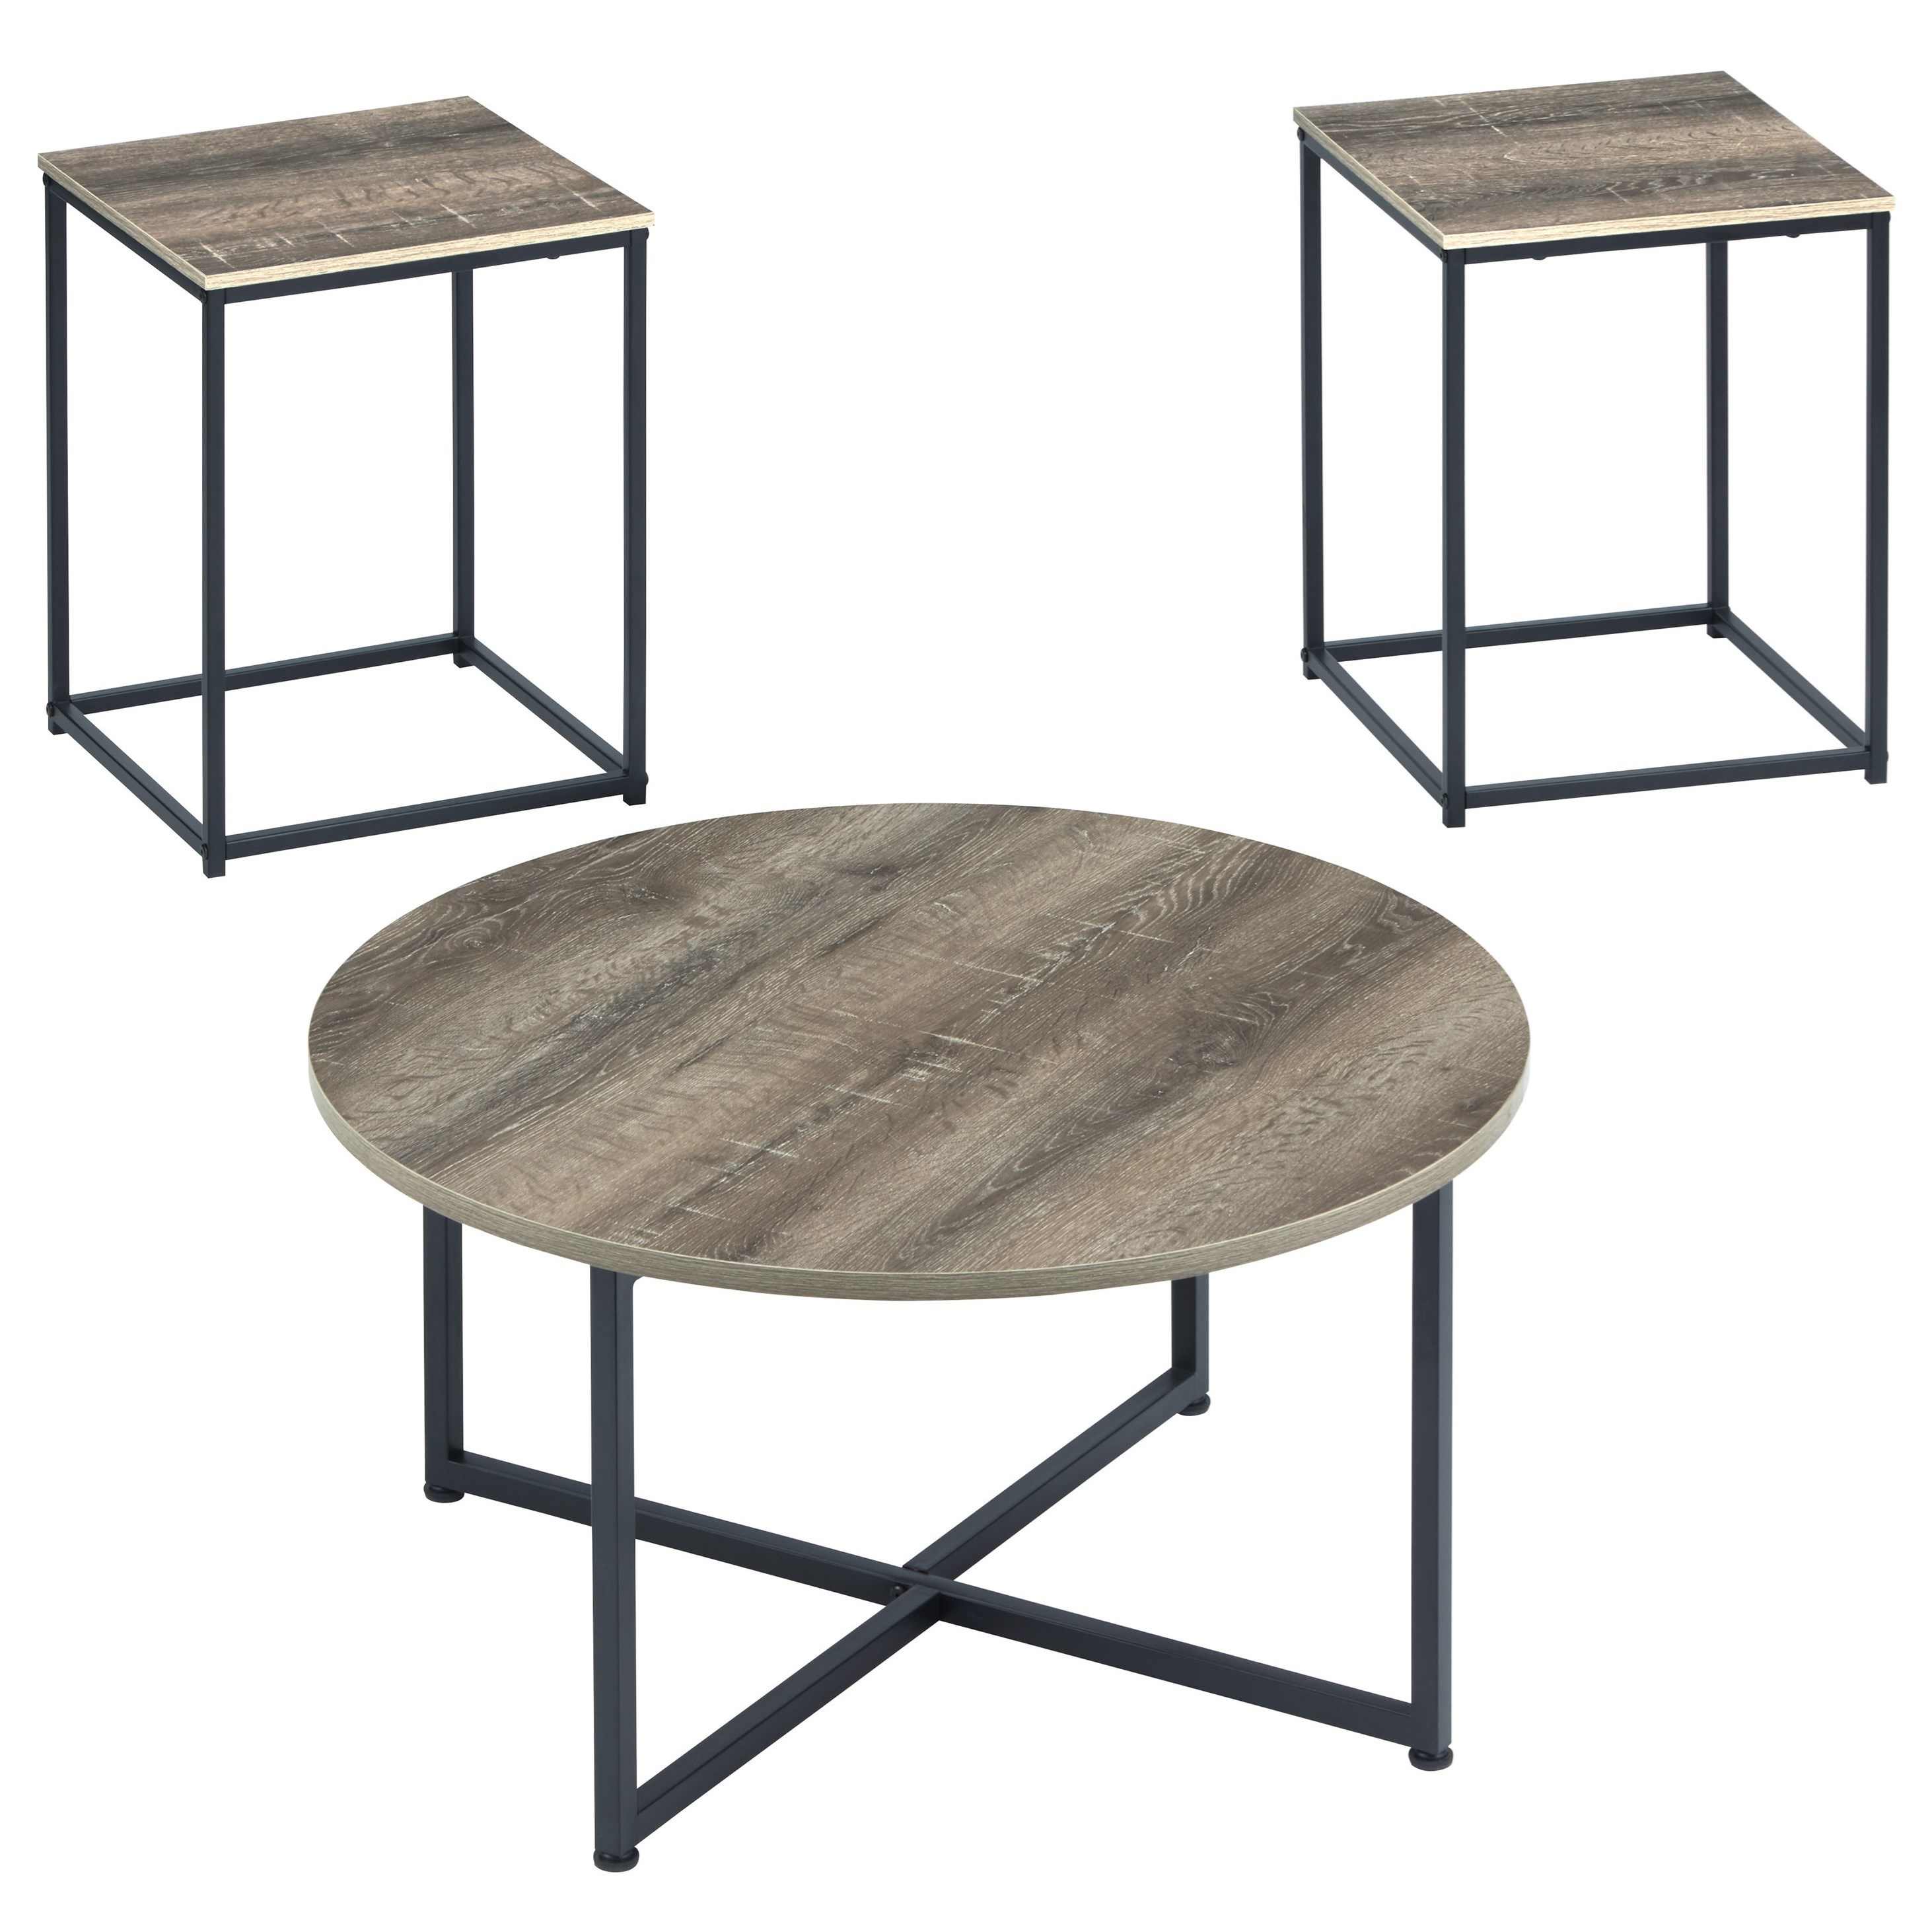 Wadeworth 3-Piece Occasional Table Set by Signature Design by Ashley at Sparks HomeStore